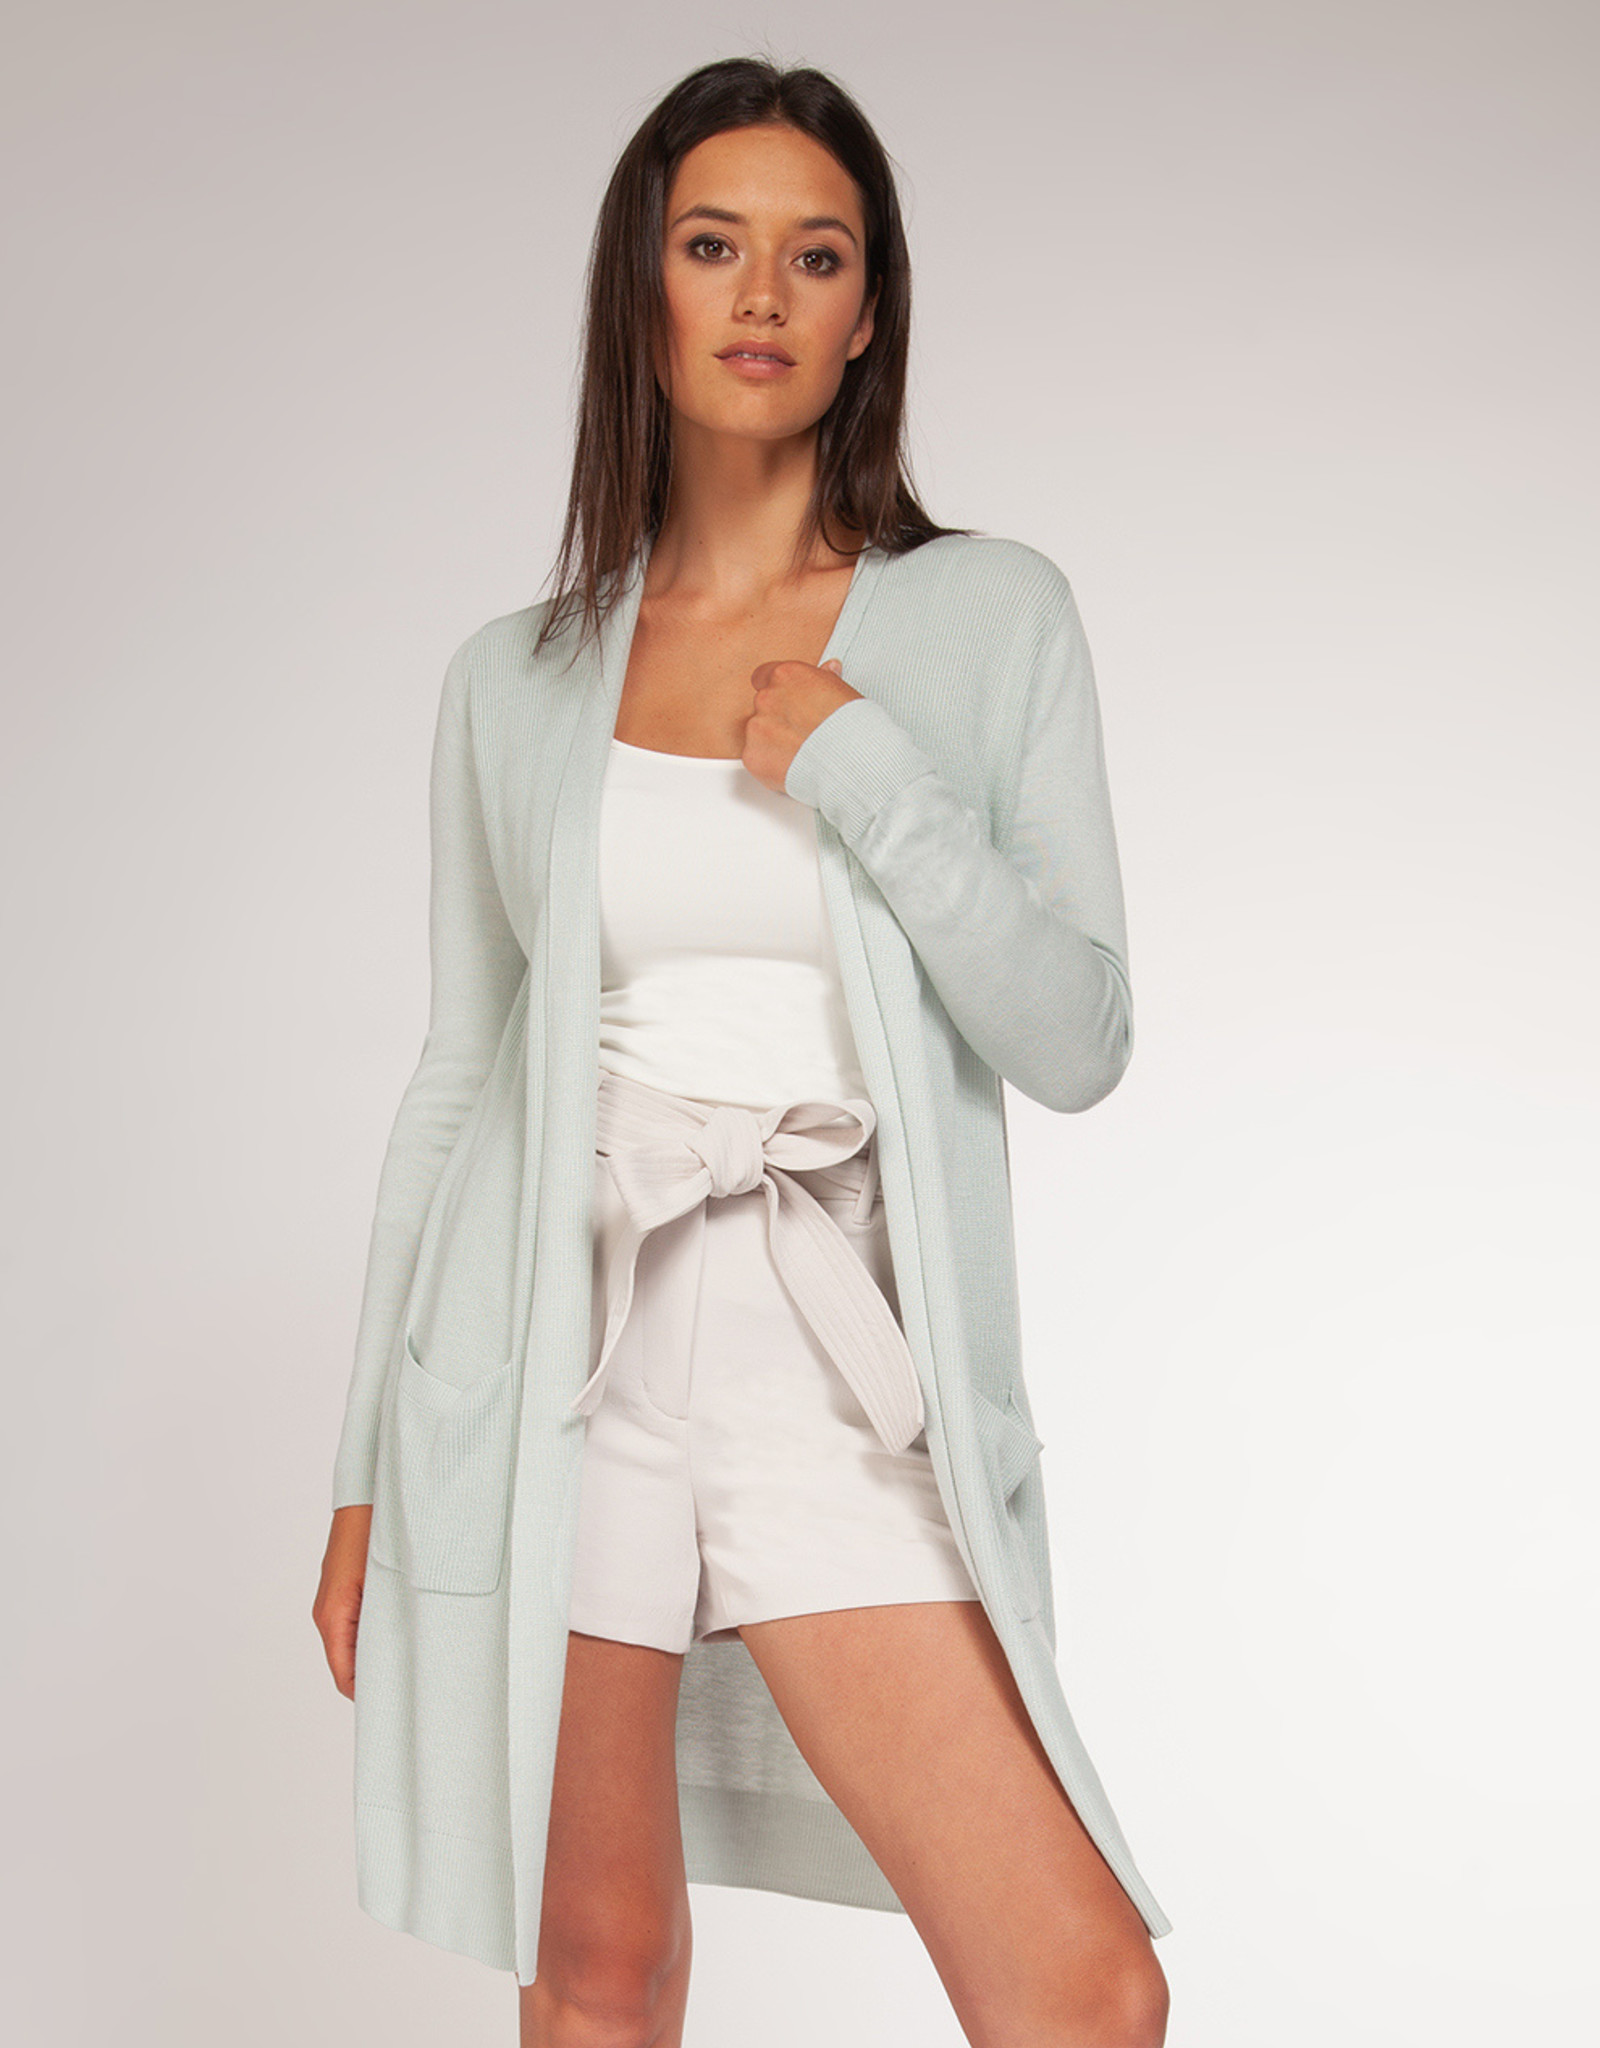 Black Tape Mint Cardigan